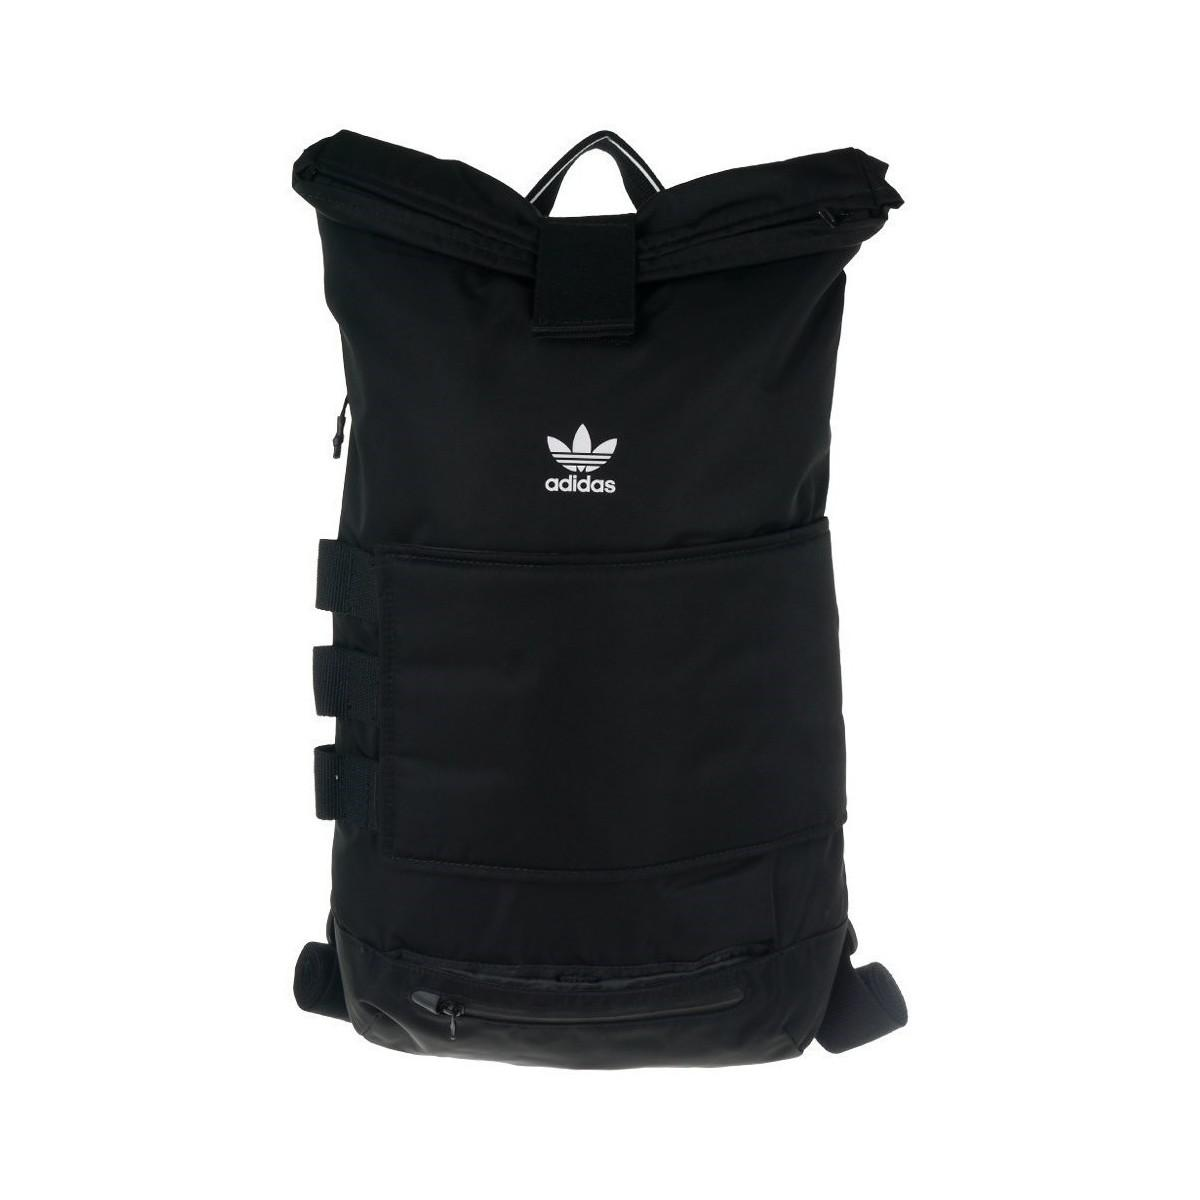 adidas Rollup Backpack Men s Backpack In Black in Black for Men - Lyst 70c826135839e